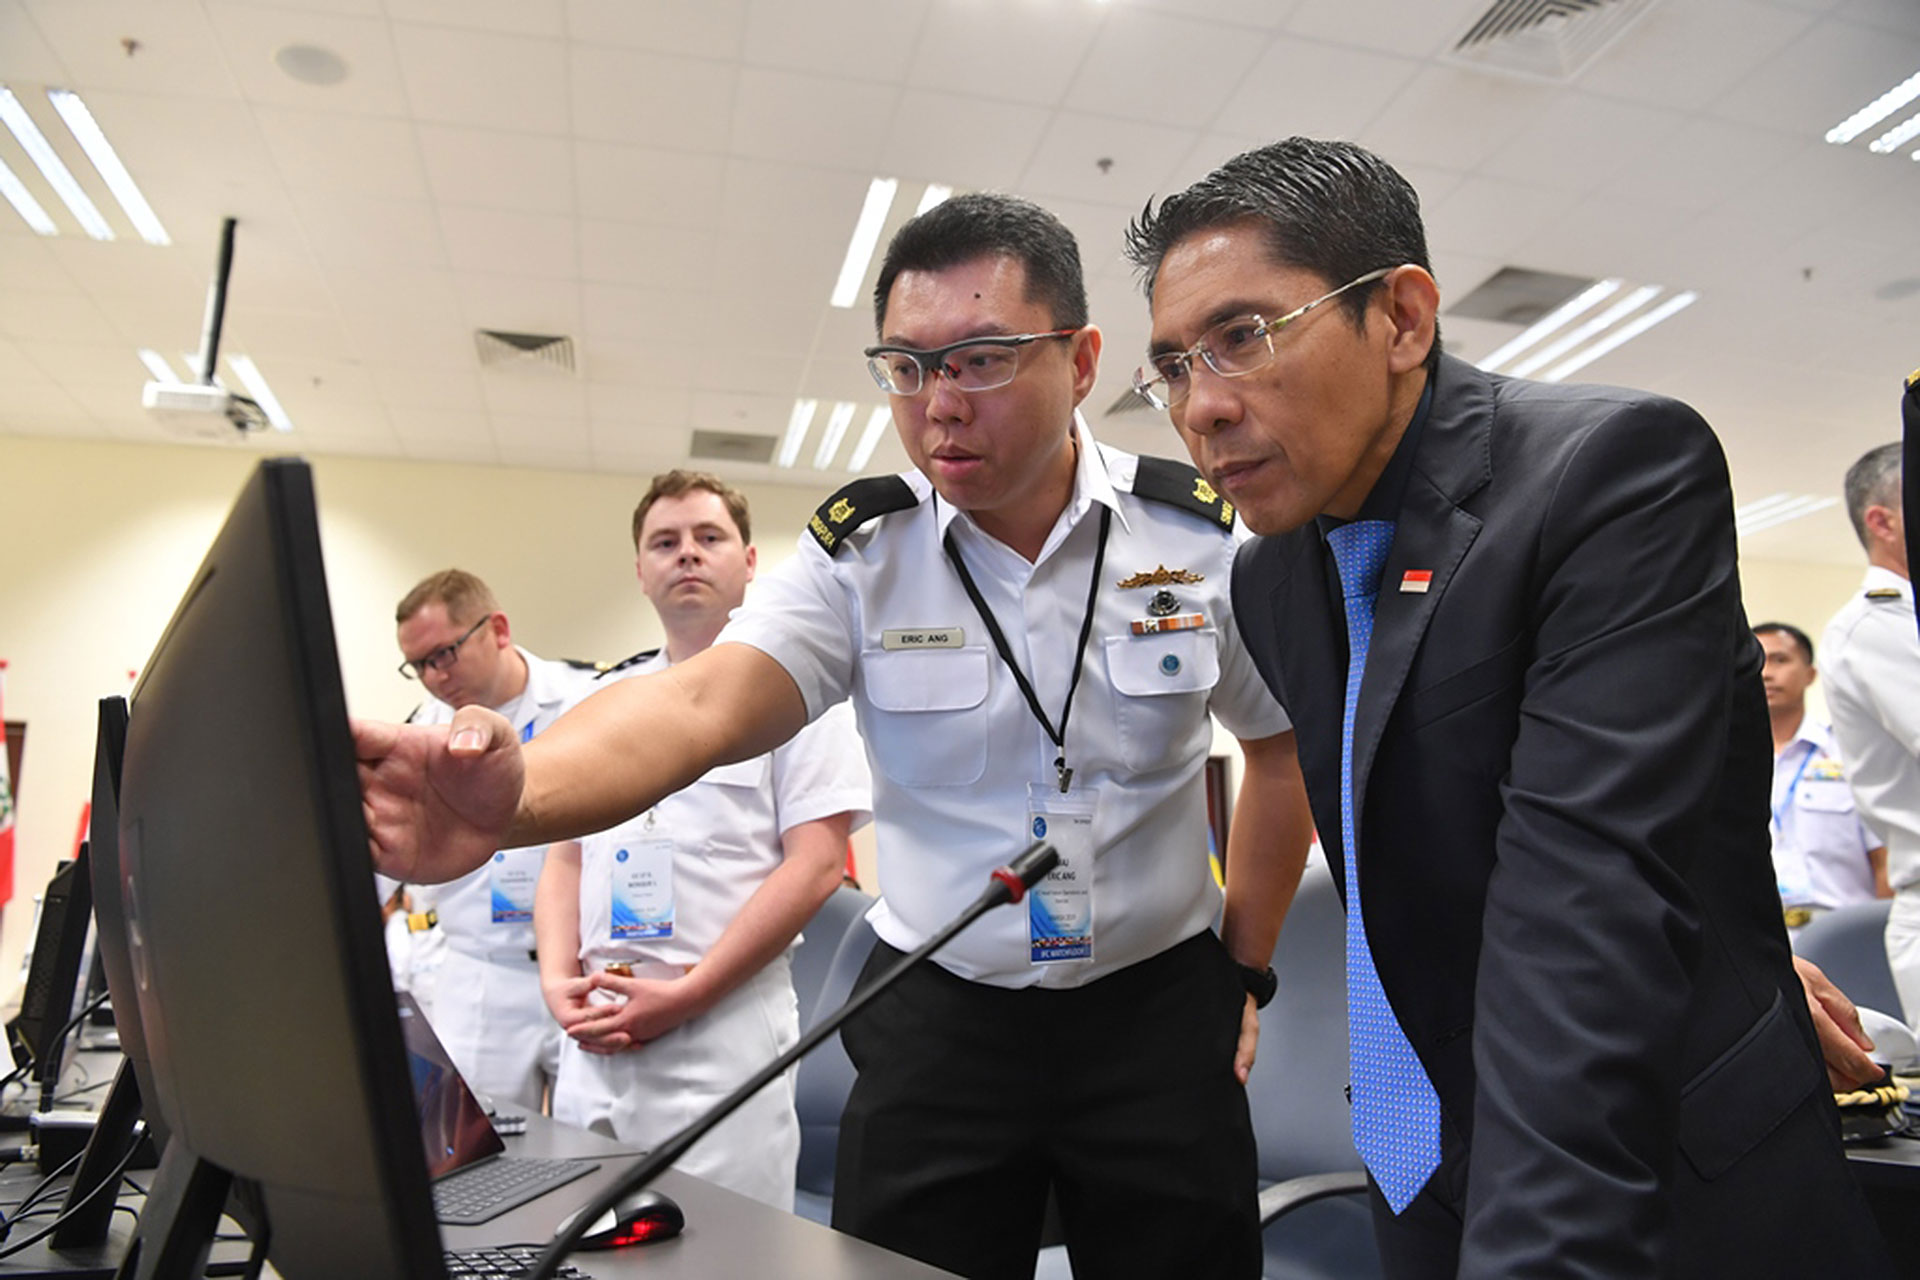 Dr Maliki being briefed on the capabilities of the newly launched IRIS.